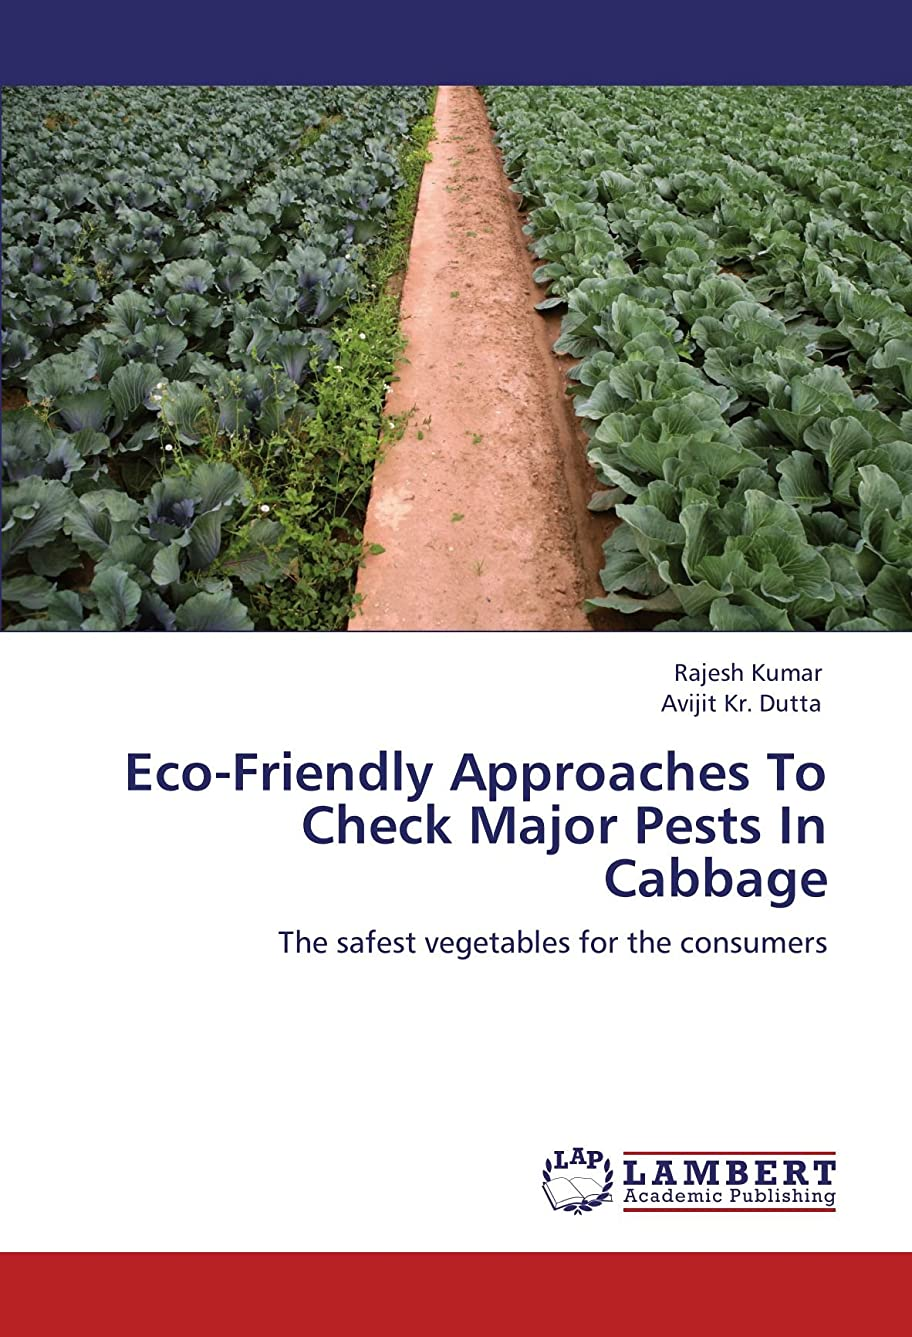 教会チューインガム関税Eco-Friendly Approaches to Check Major Pests in Cabbage